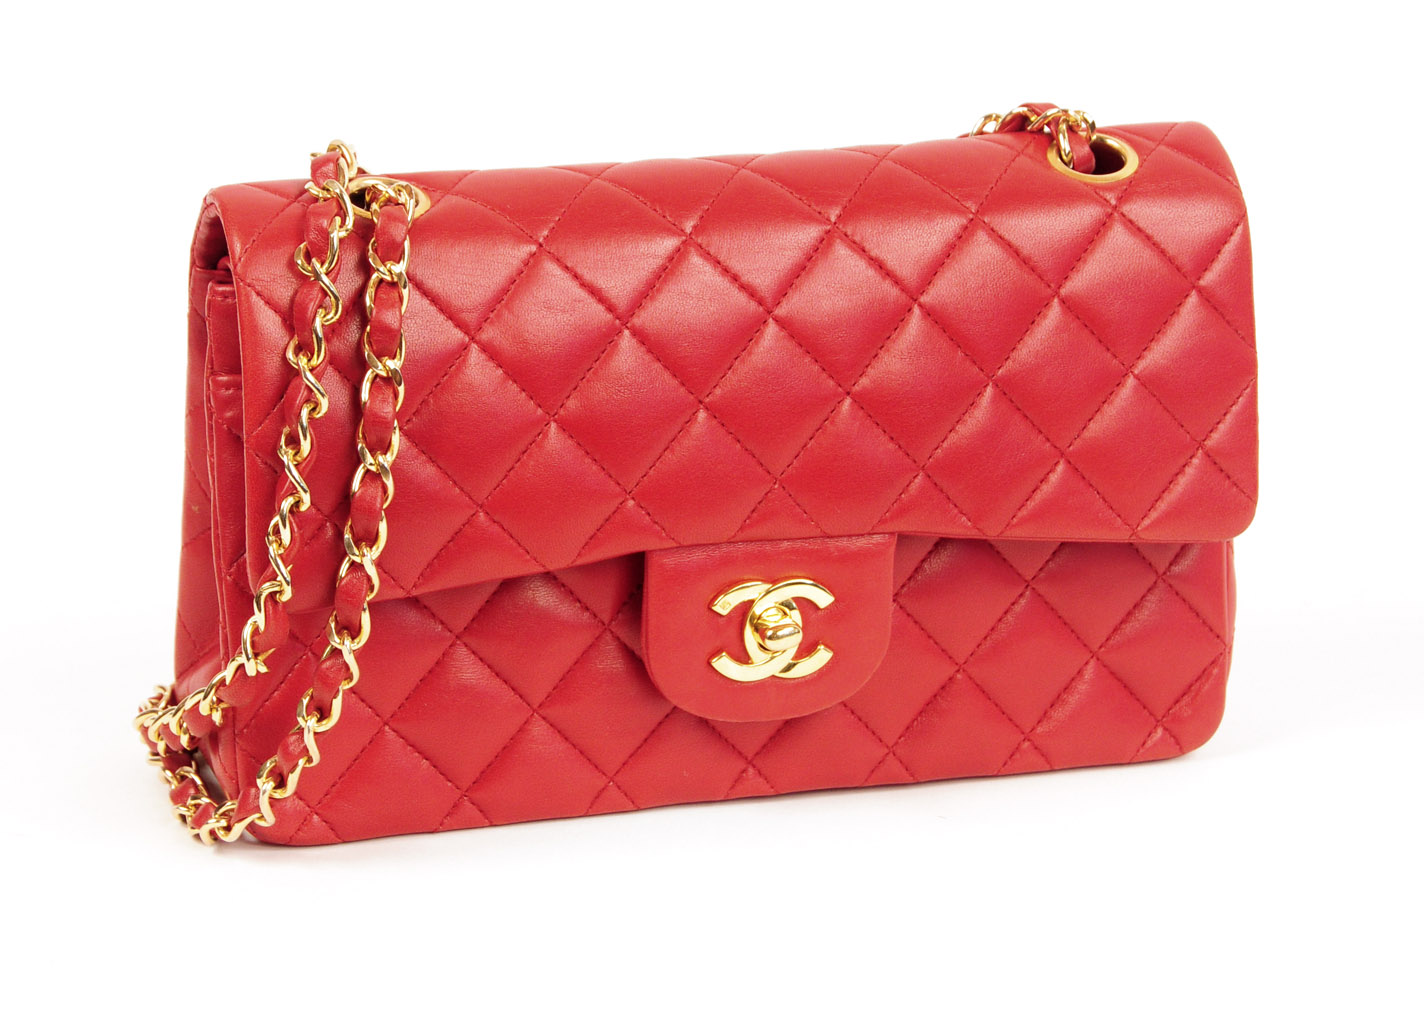 chanel-red-smallest.jpg